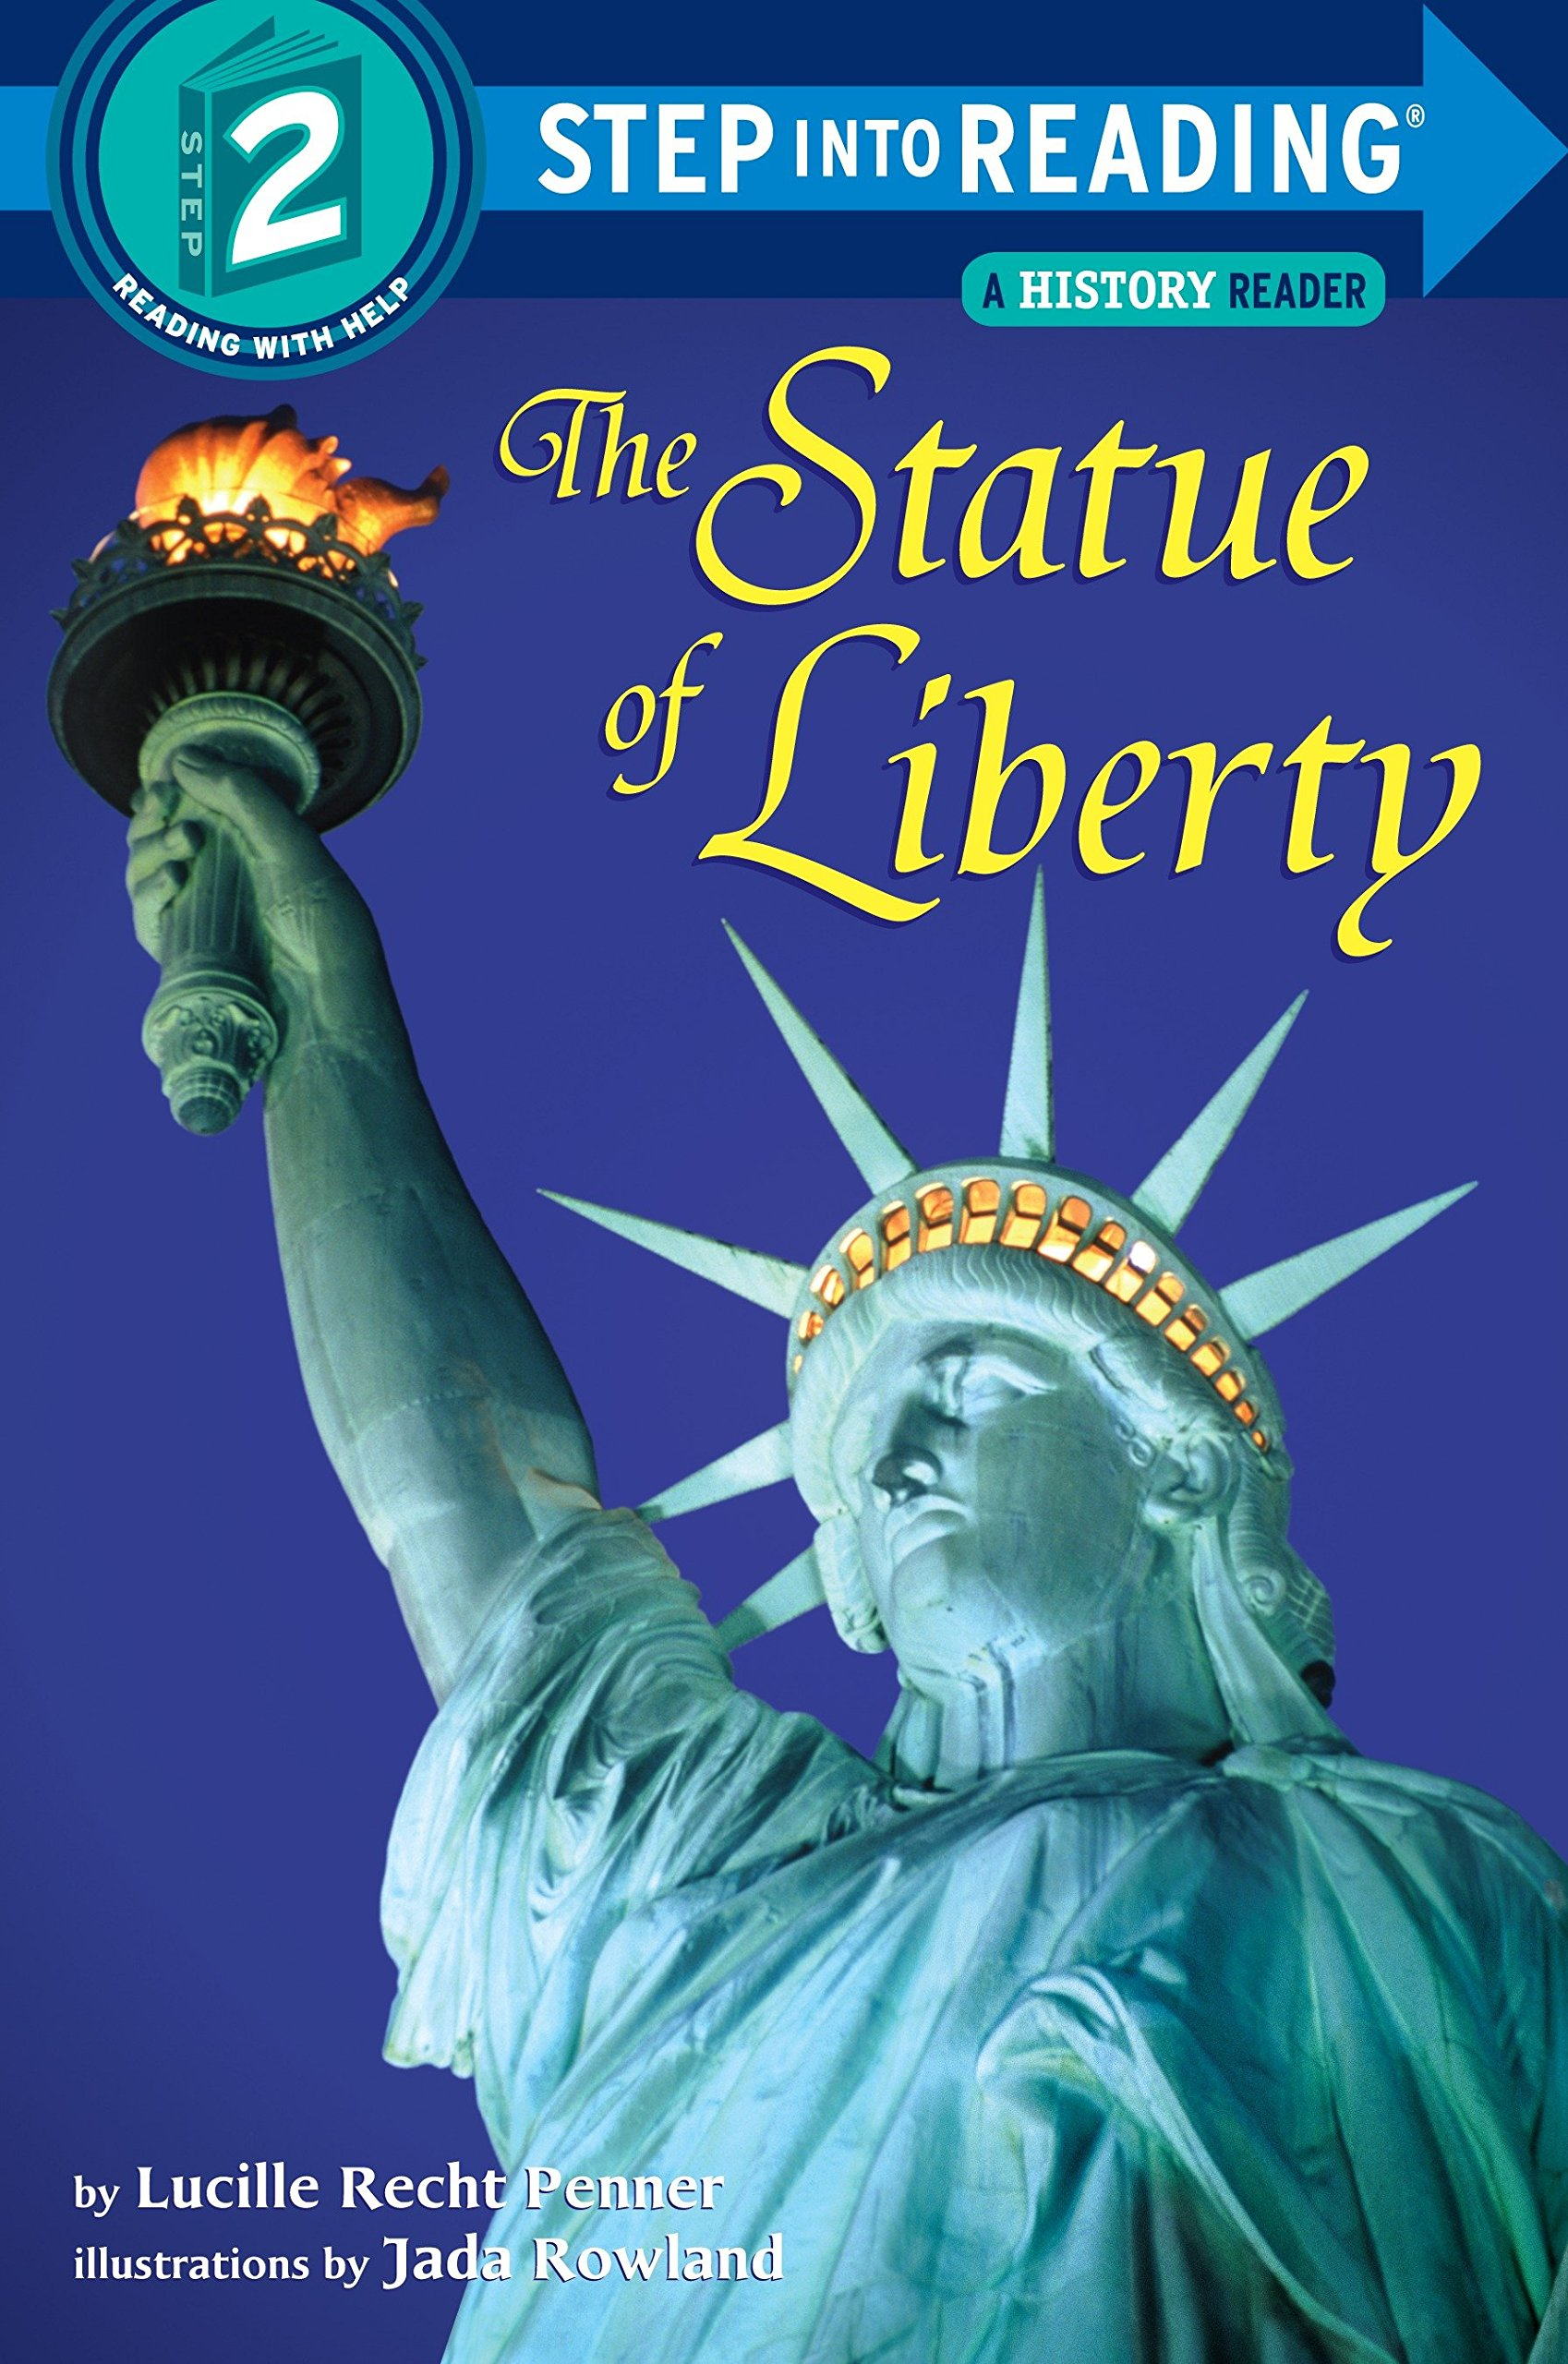 Amazon.com: The Statue of Liberty (Step-into-Reading, Step 2)  (9780679869283): Lucille Recht Penner, Jada Rowland: Books